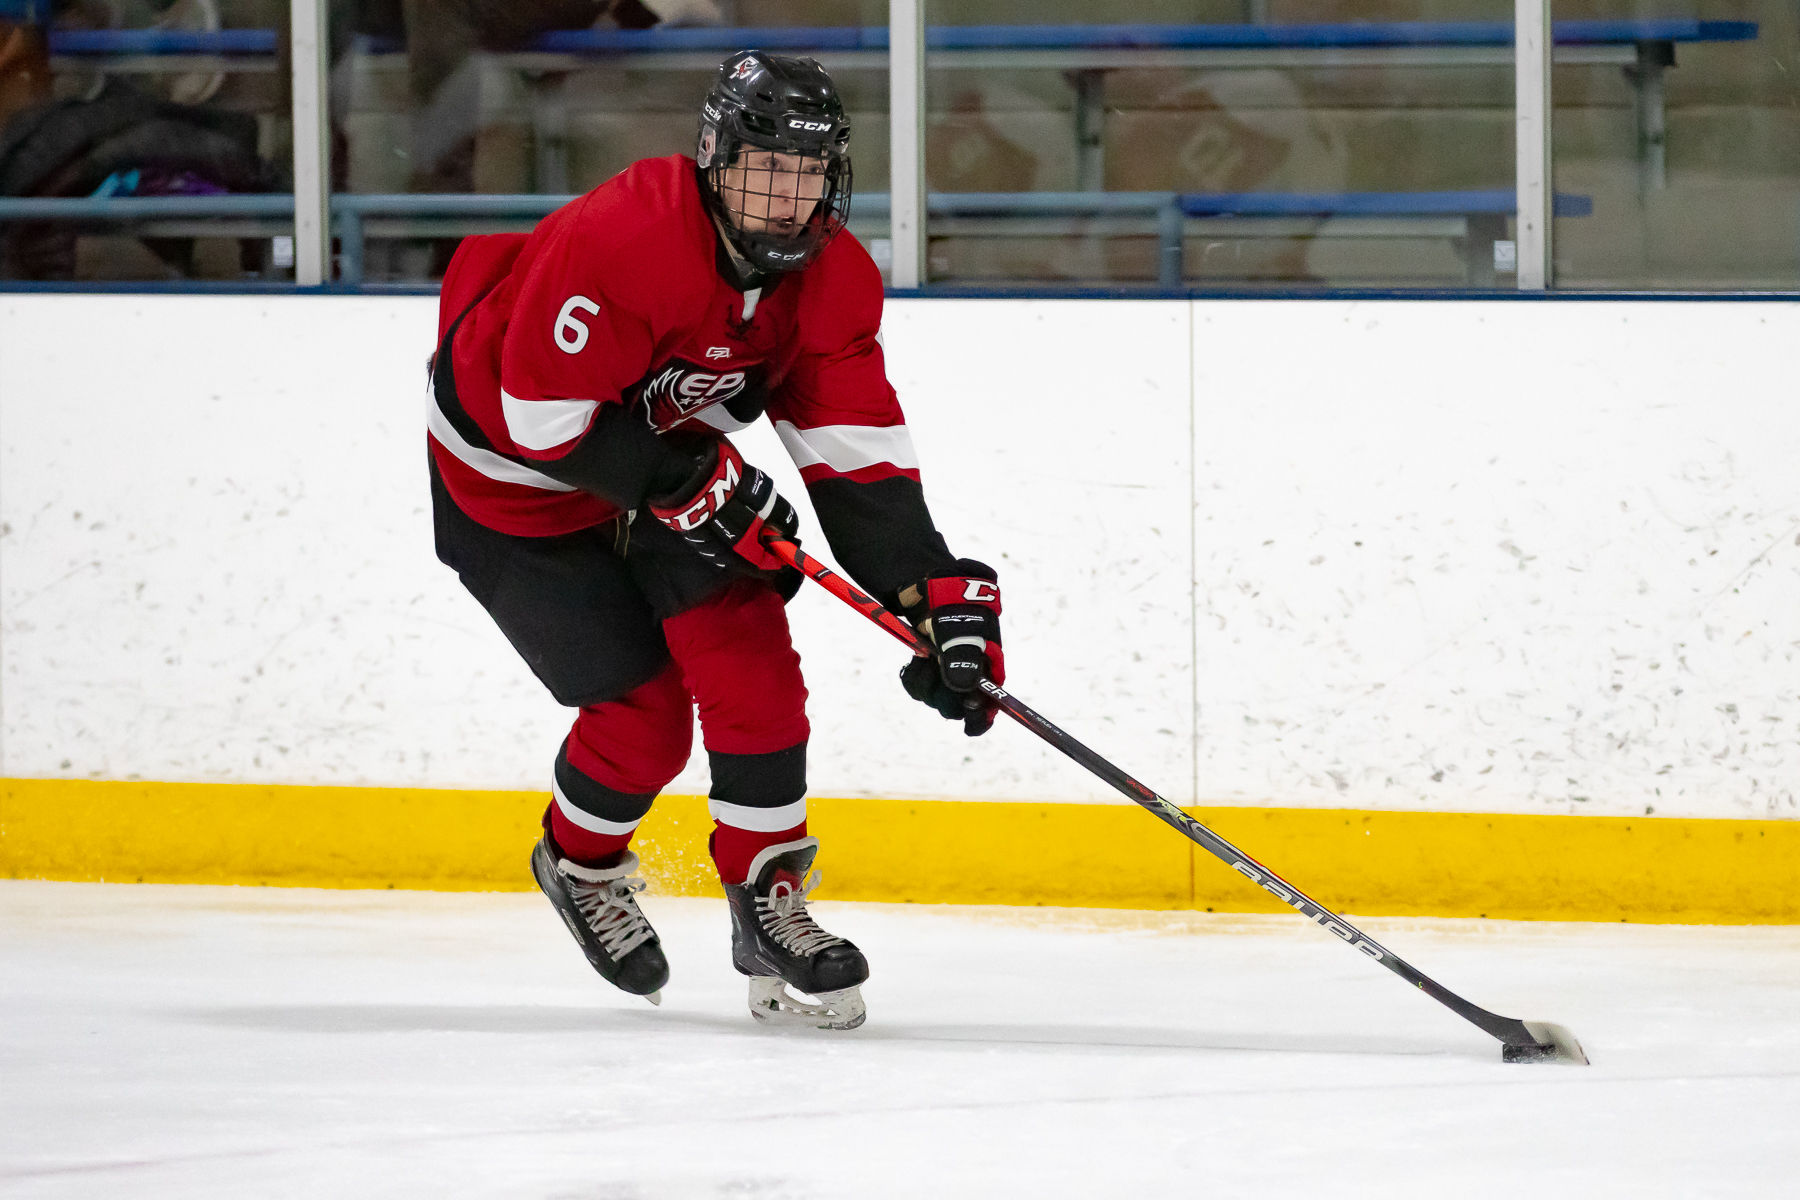 Eden Prairie senior forward Ben Steeves notched a hat trick to lead the Eagles in a 6-2 win over Benilde-St. Margaret's on Tuesday night in St. Louis Park. Photo by Gary Mukai, SportsEngine